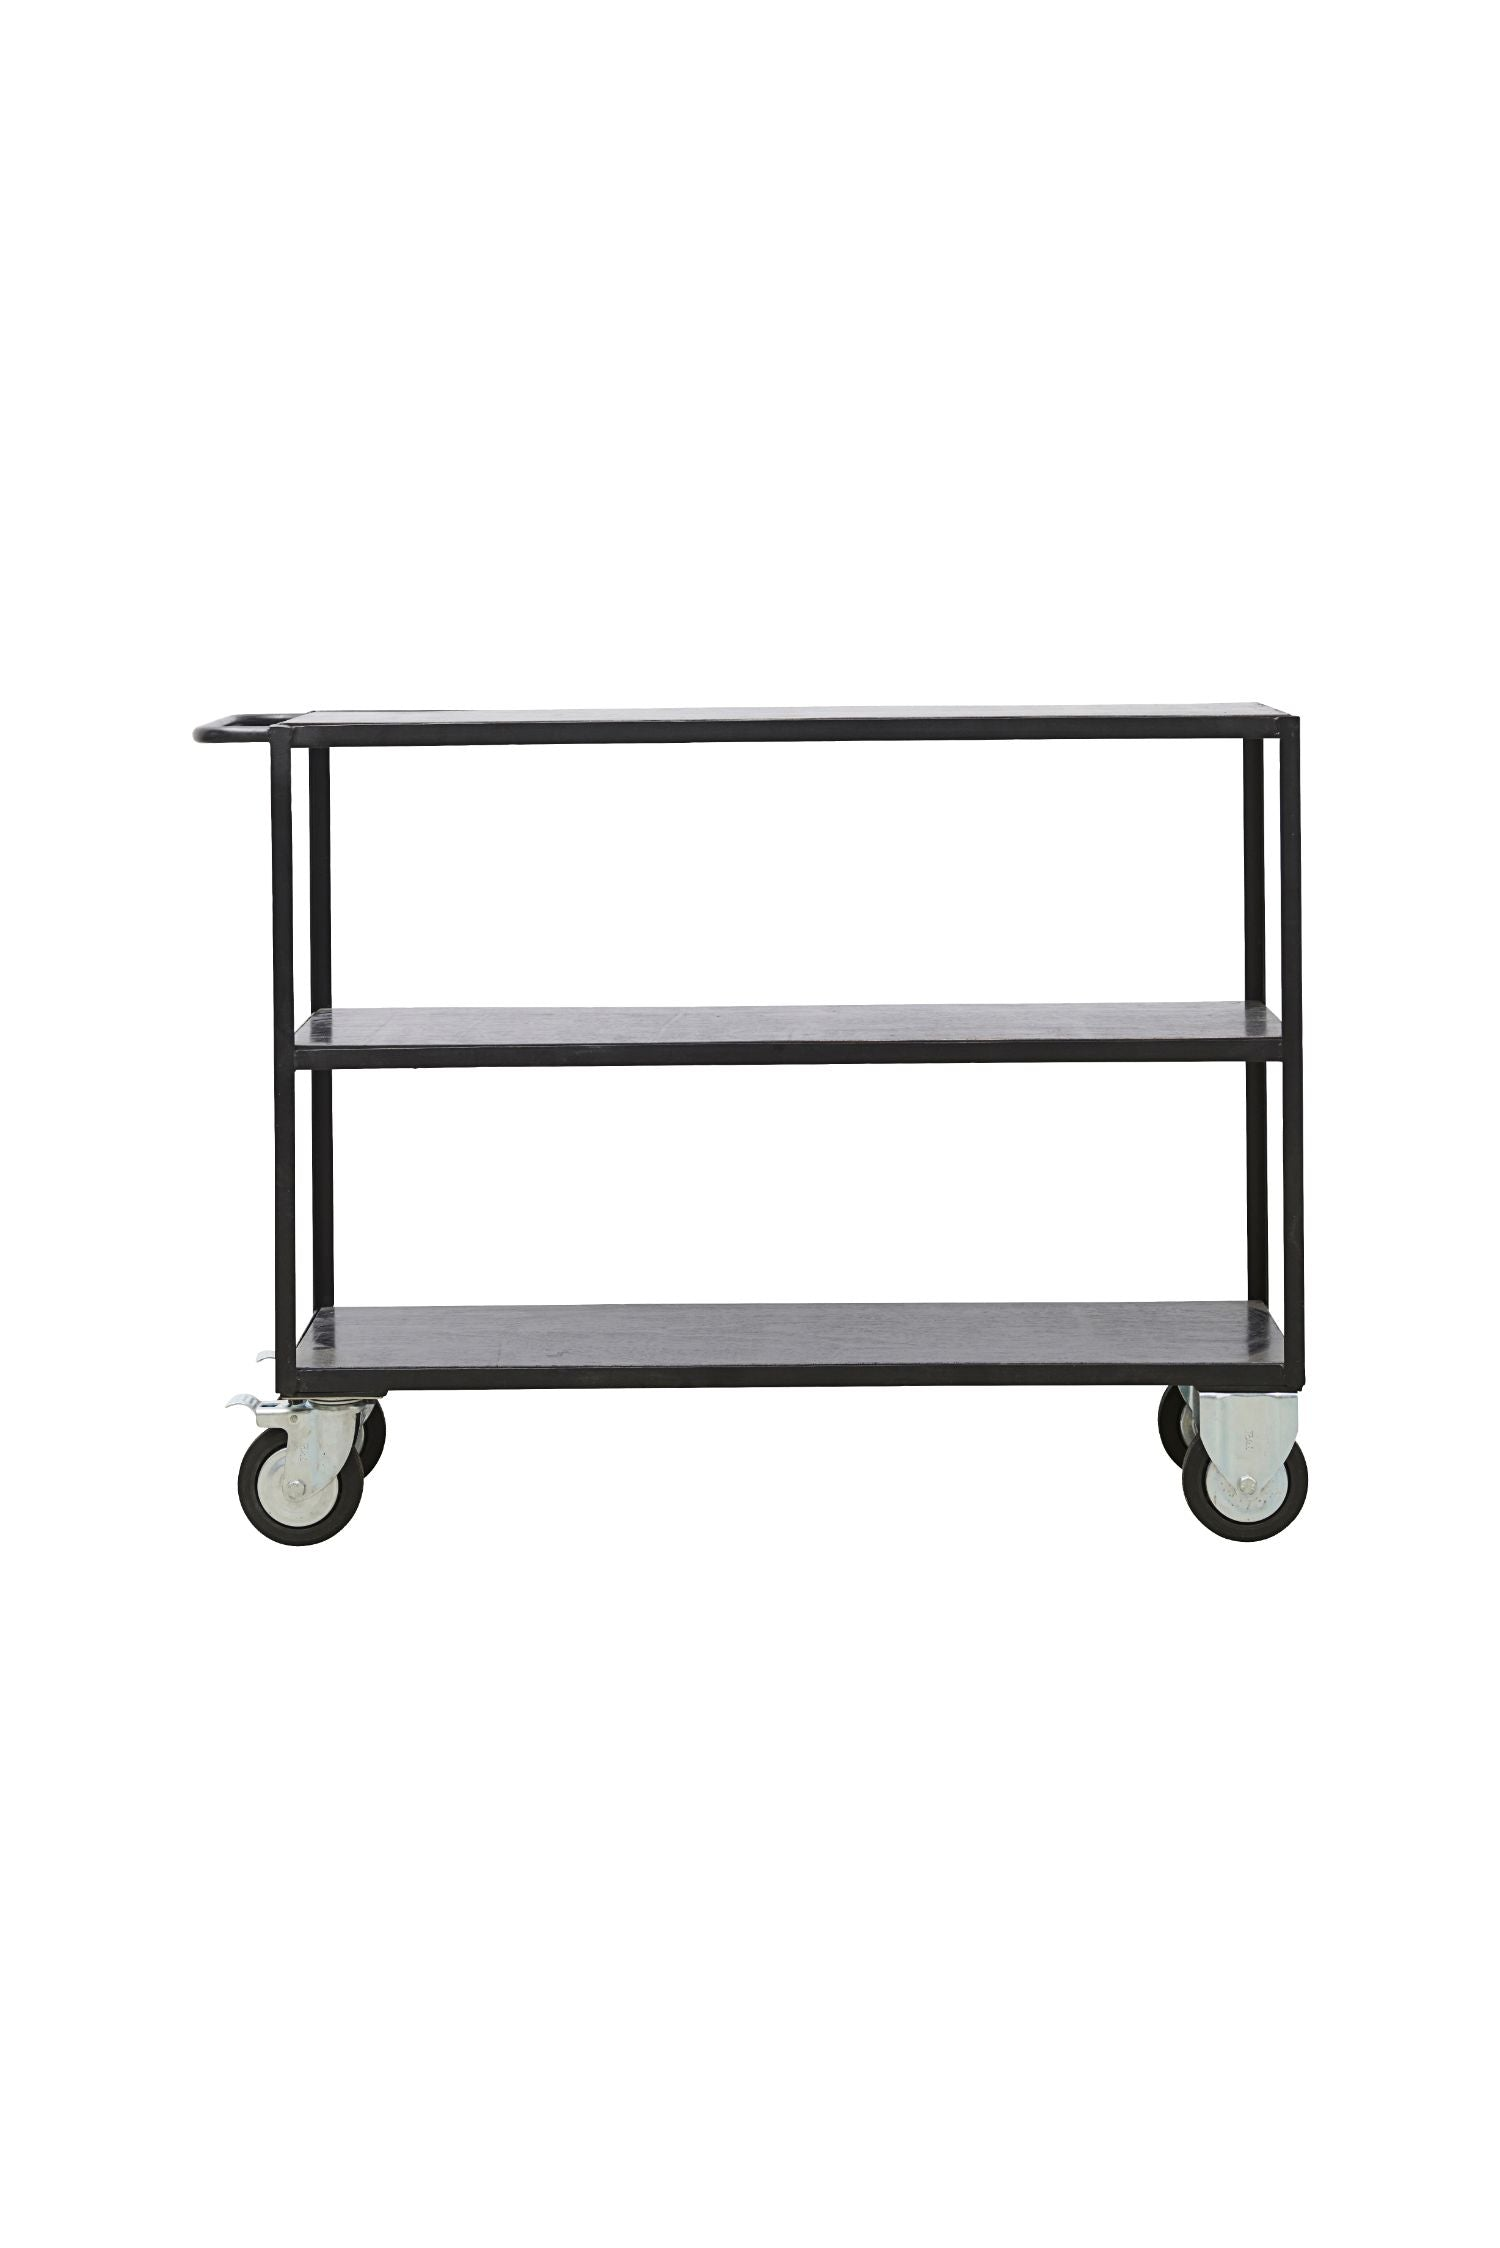 shelving unit with castors